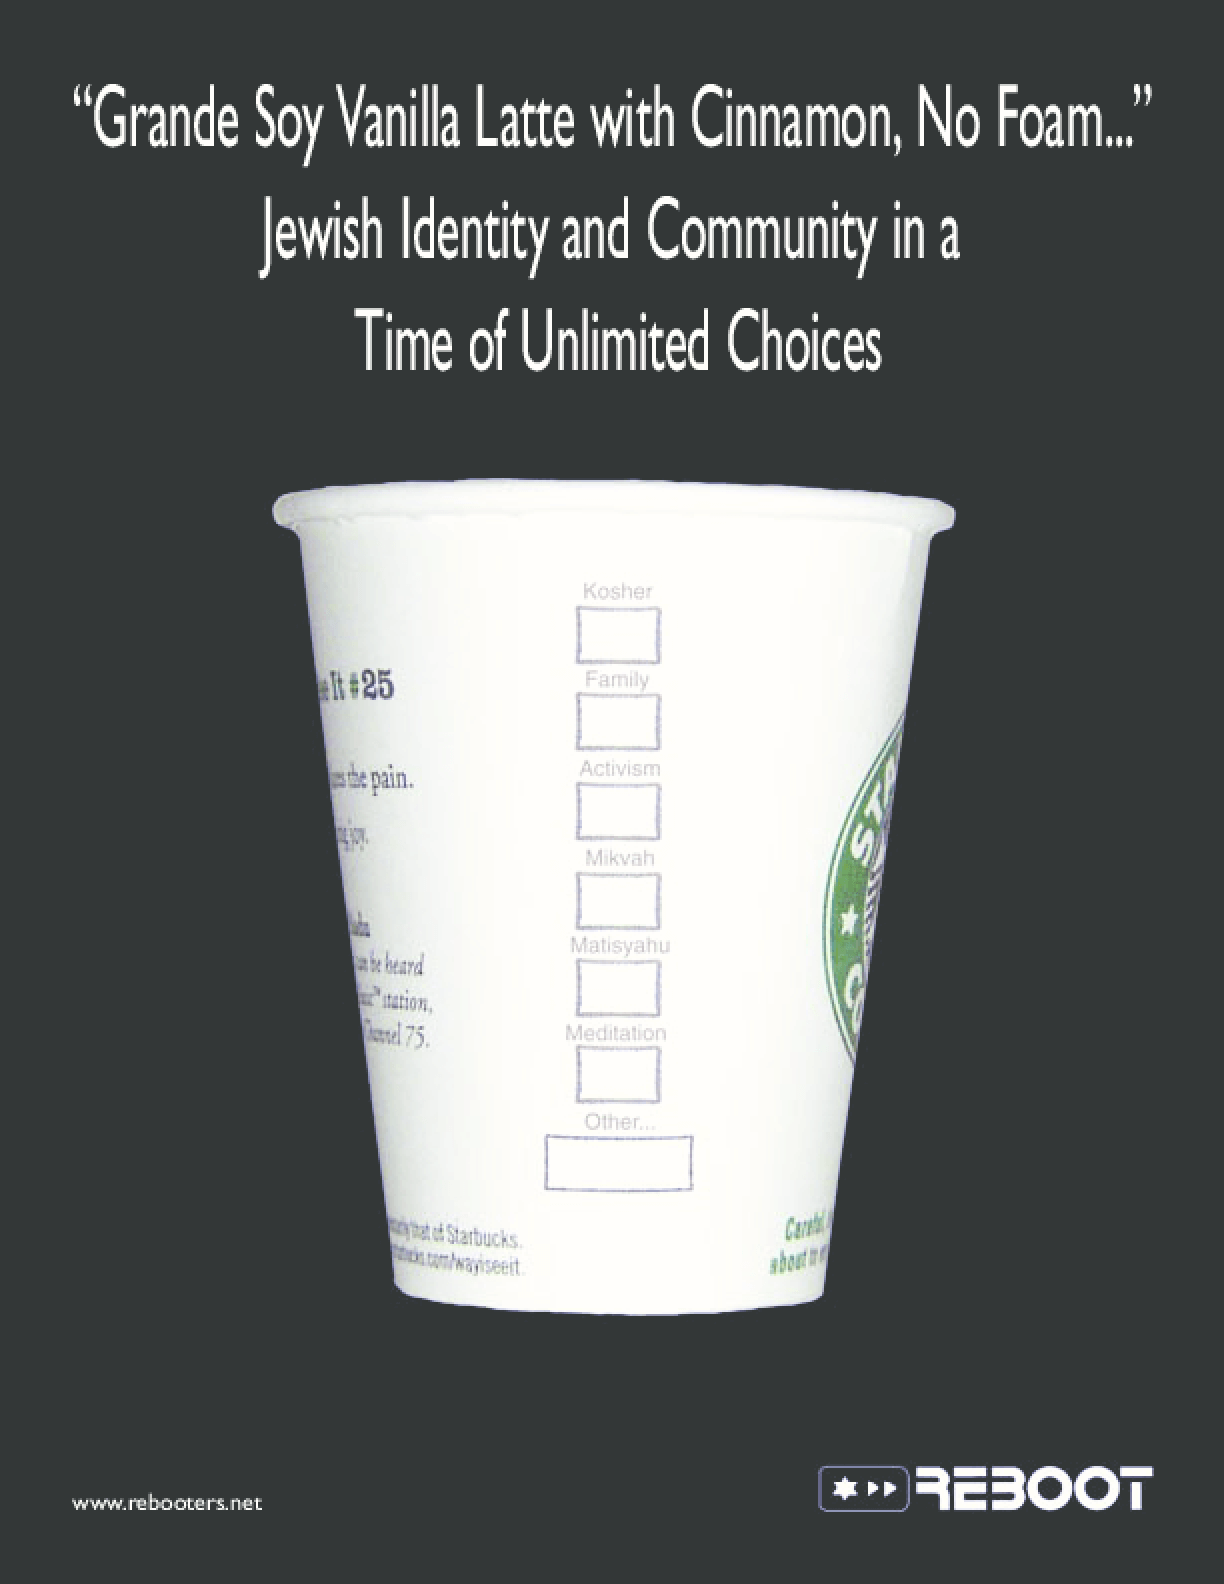 The Latte Report: Jewish Identity and Community in a Time of Unlimited Choices